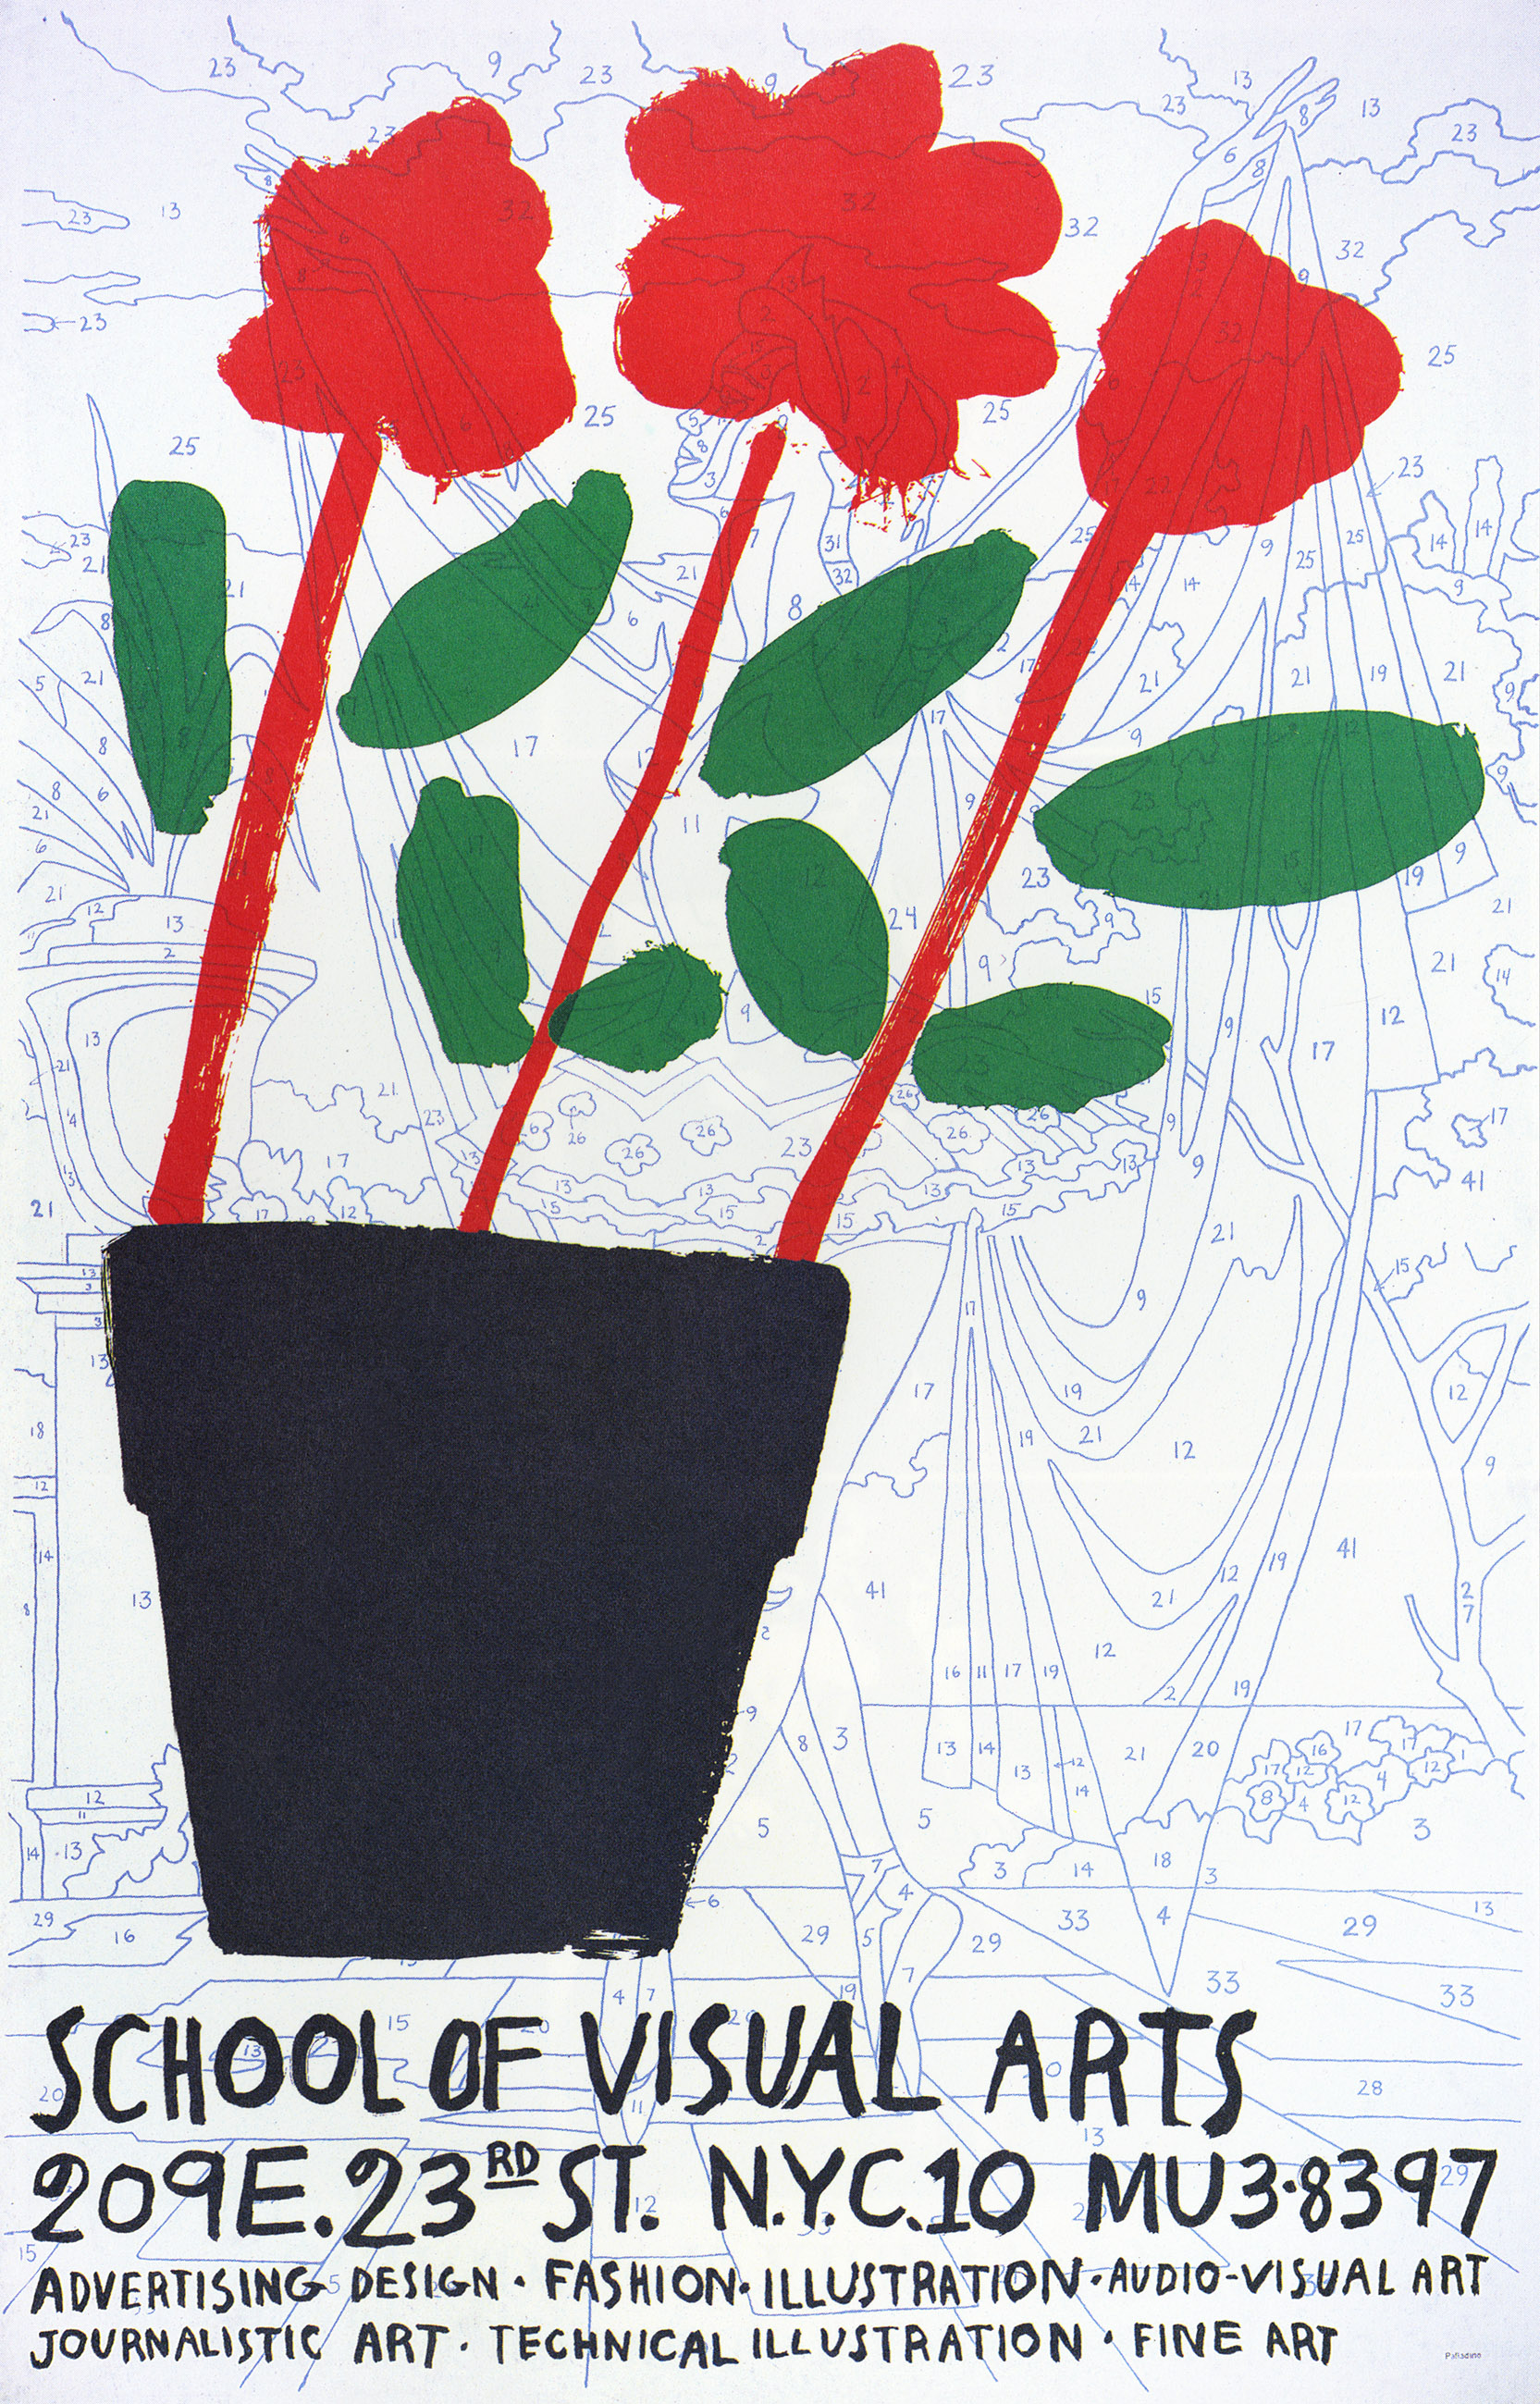 A simple geometric flowerpot with red flowers on red stems and green leaves against a blank color-by-numbers sheet of a ballerina.